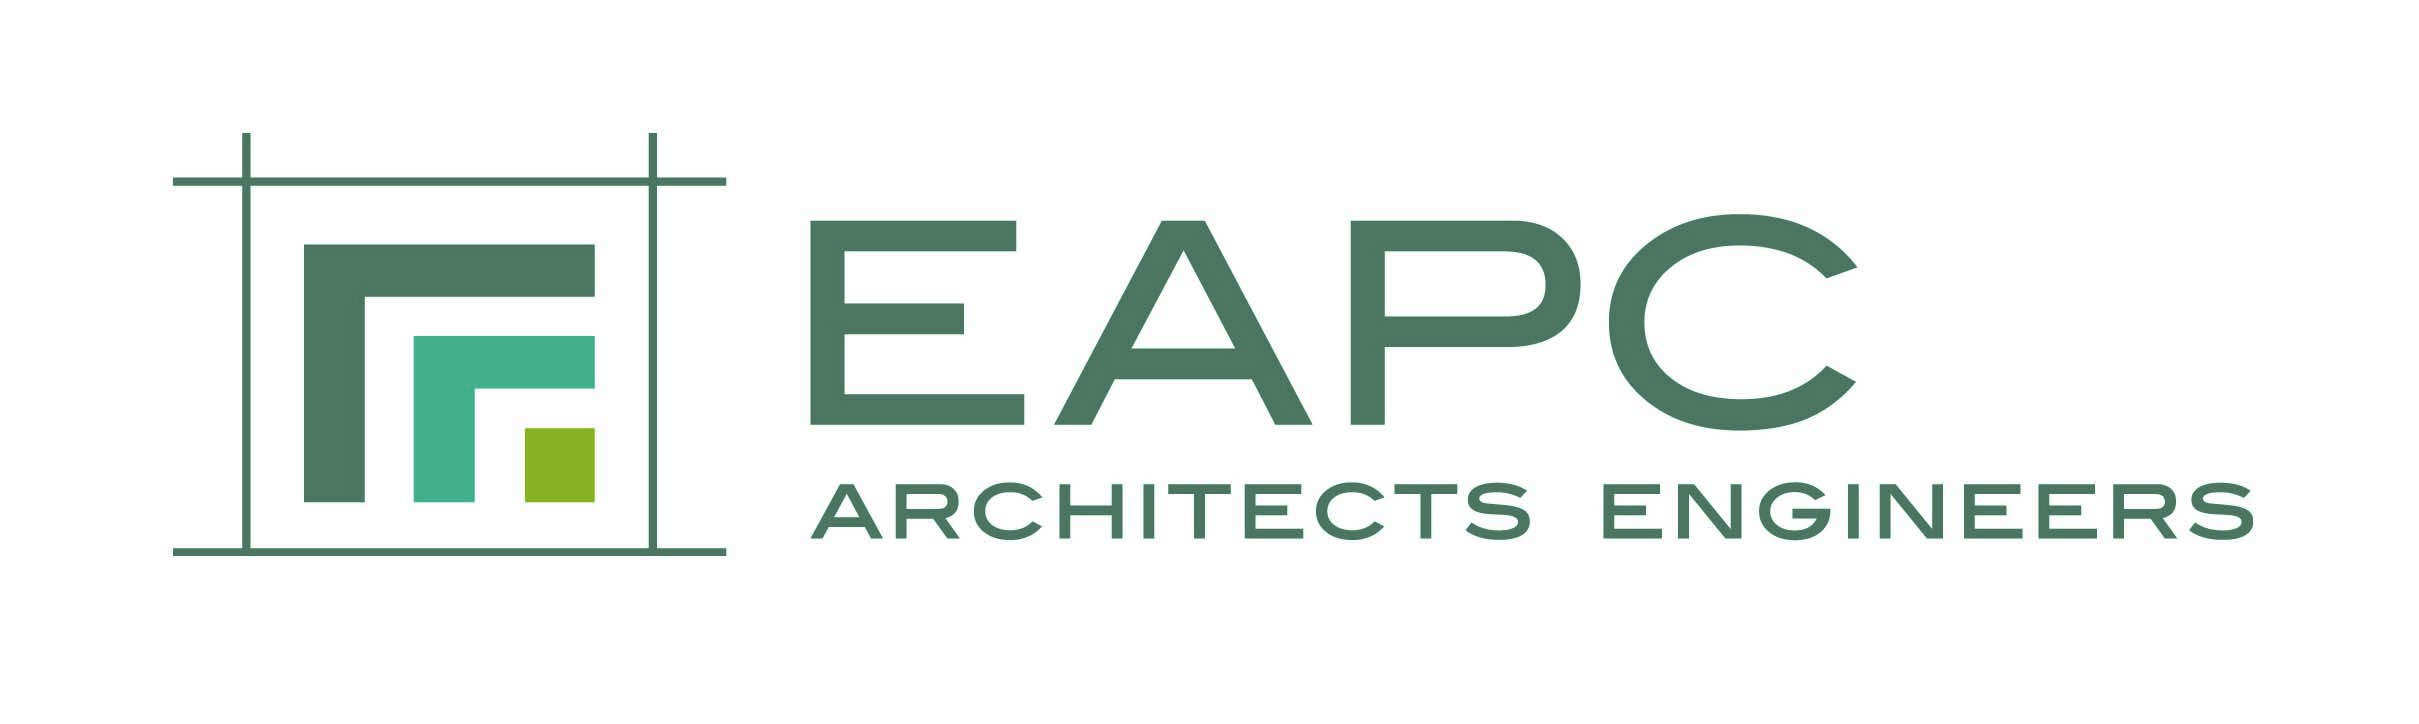 EAPC Architect Engineers